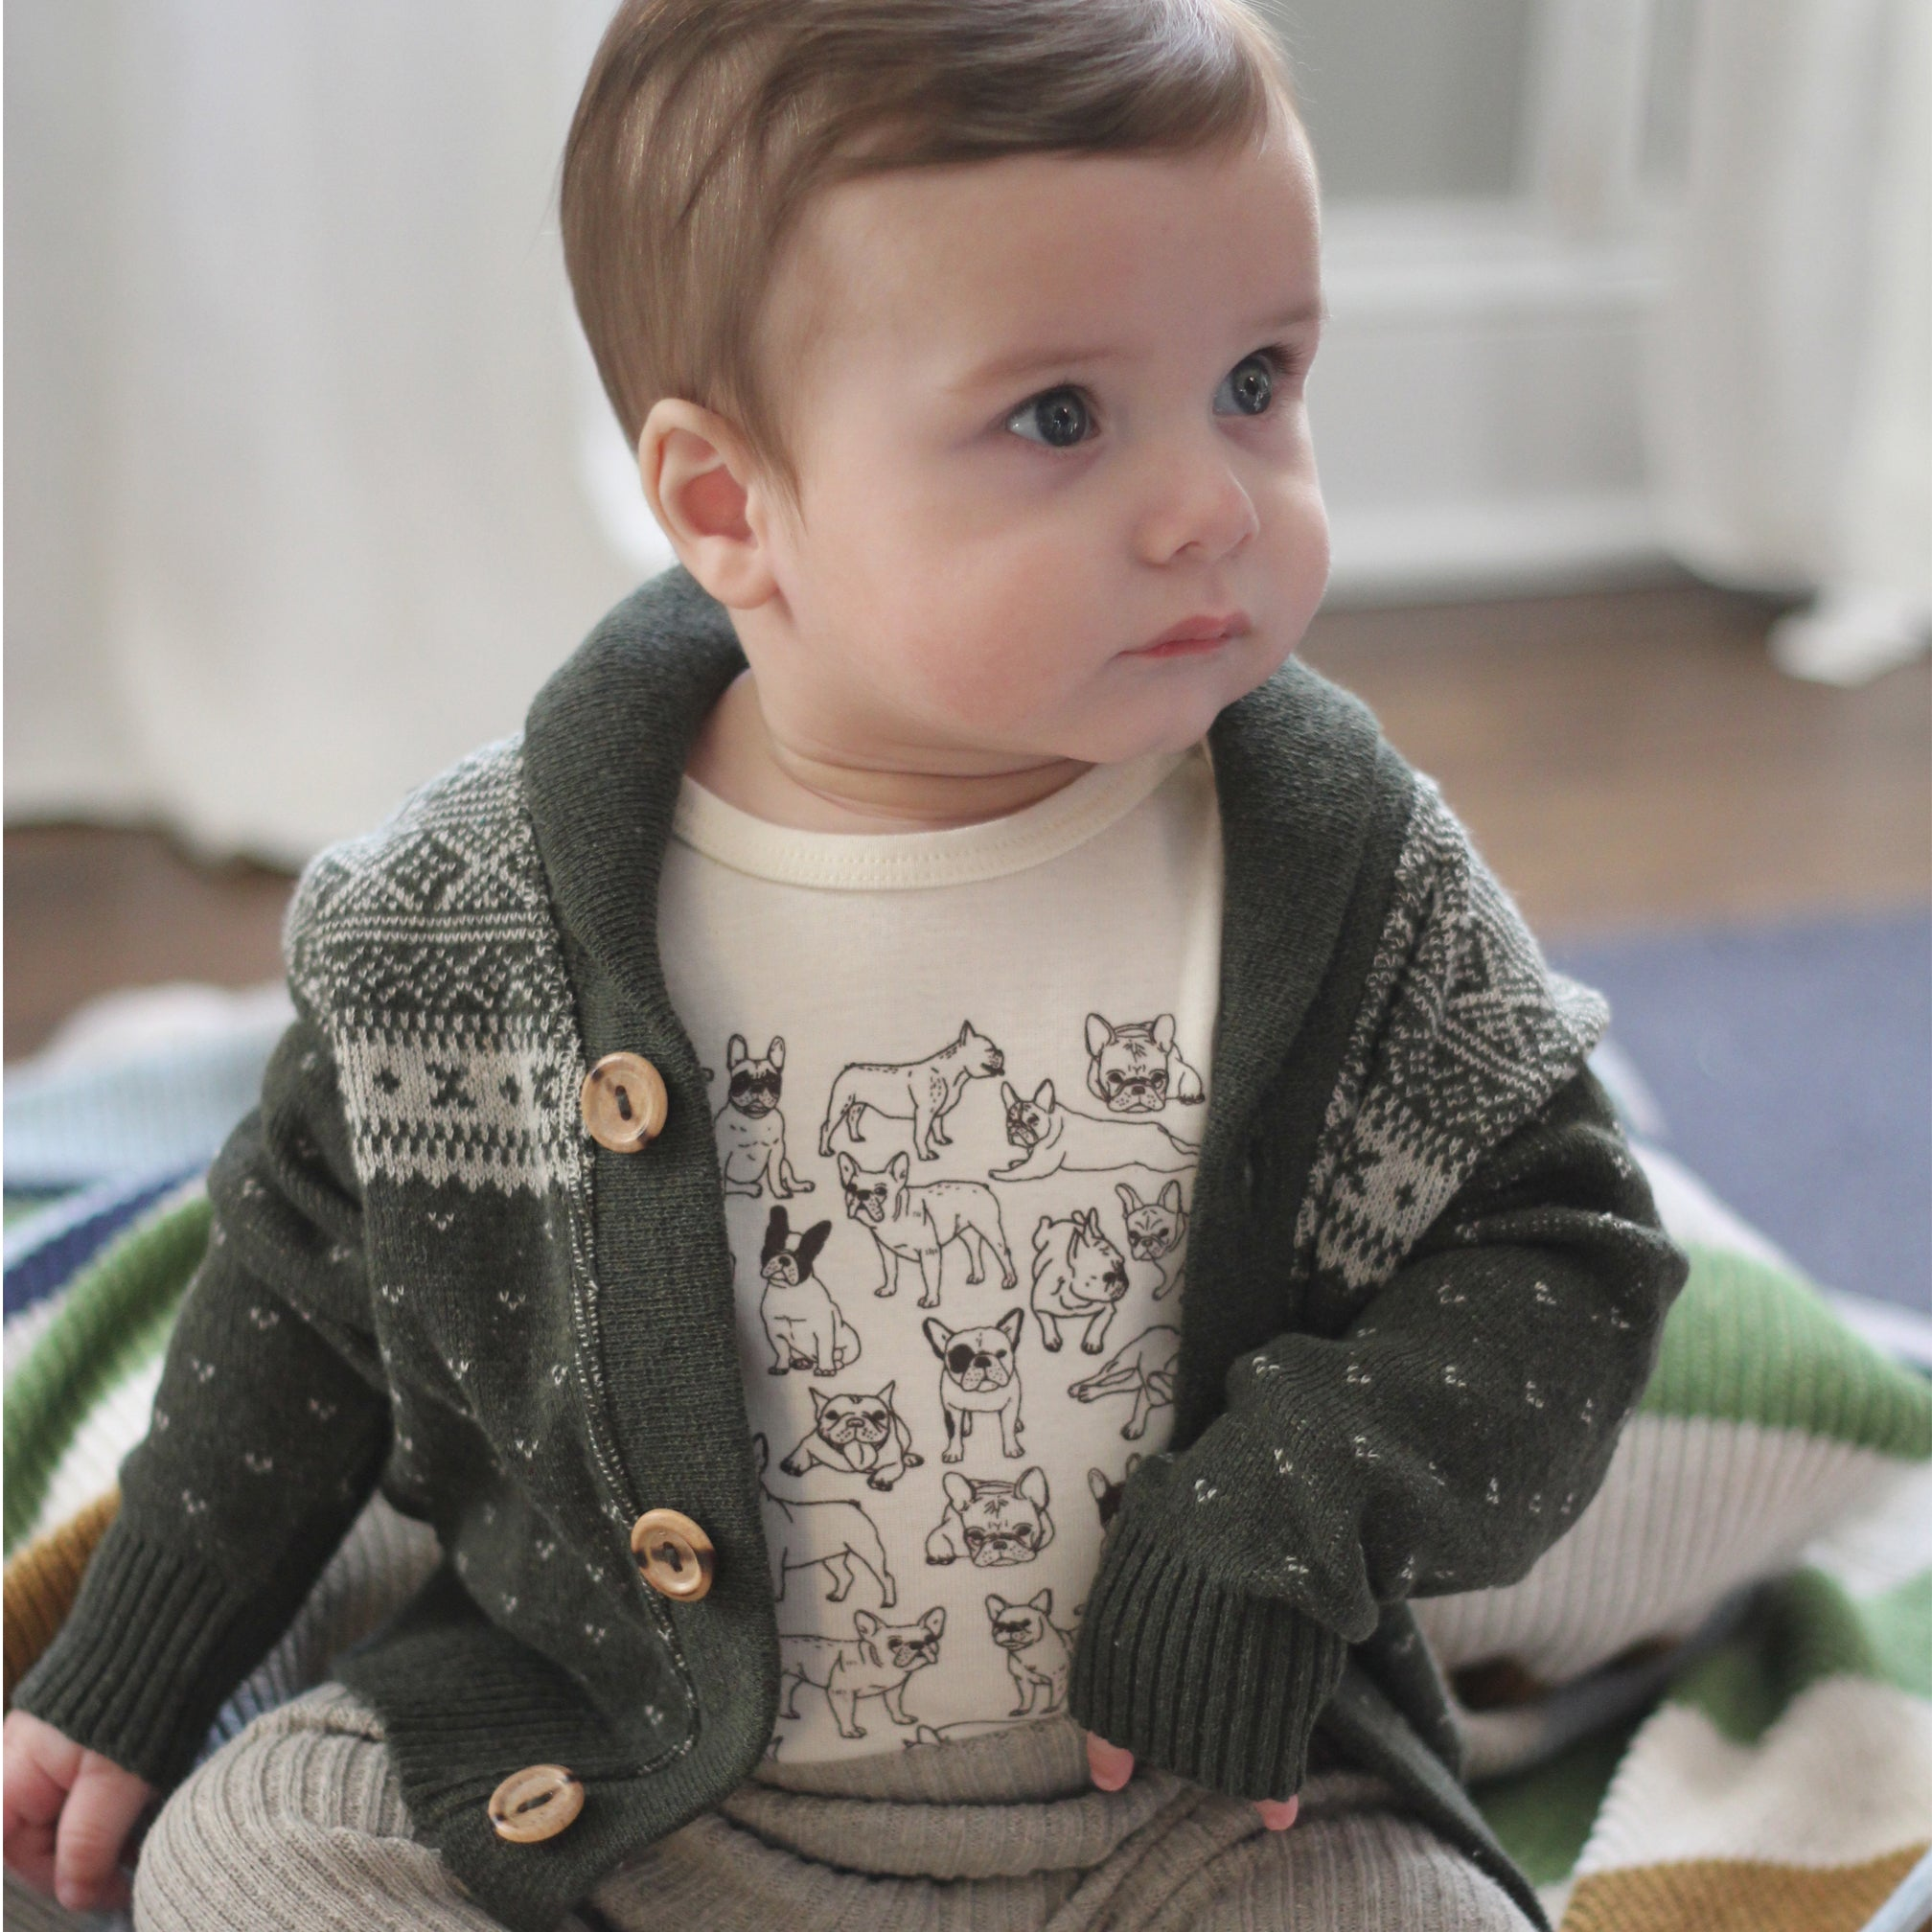 Collegiate Recycled Cotton Baby Toddler Button Down Cardigan Knit Sweater Eco Friendly Made in USA Pine